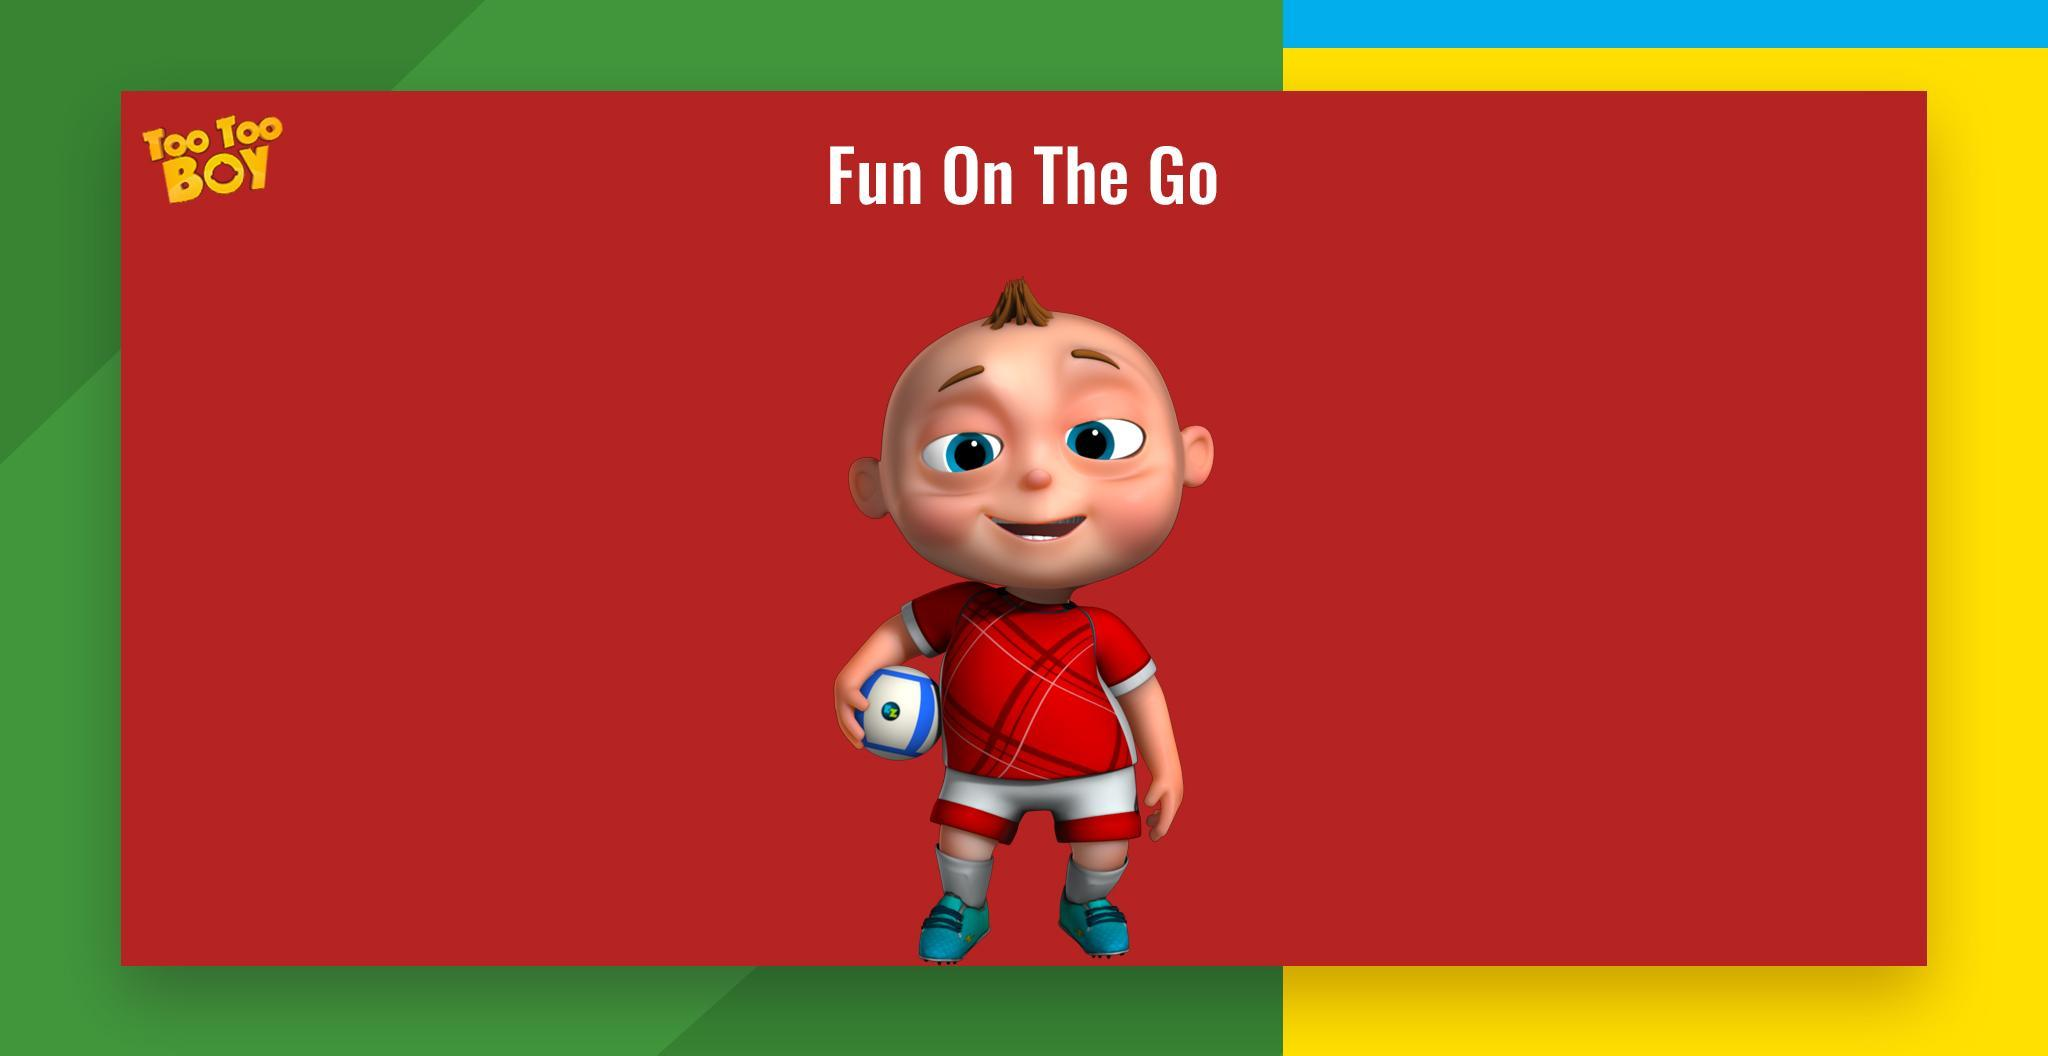 Funny Cartoon Images Of Boys tootoo boy show - funny cartoons for kids for android - apk